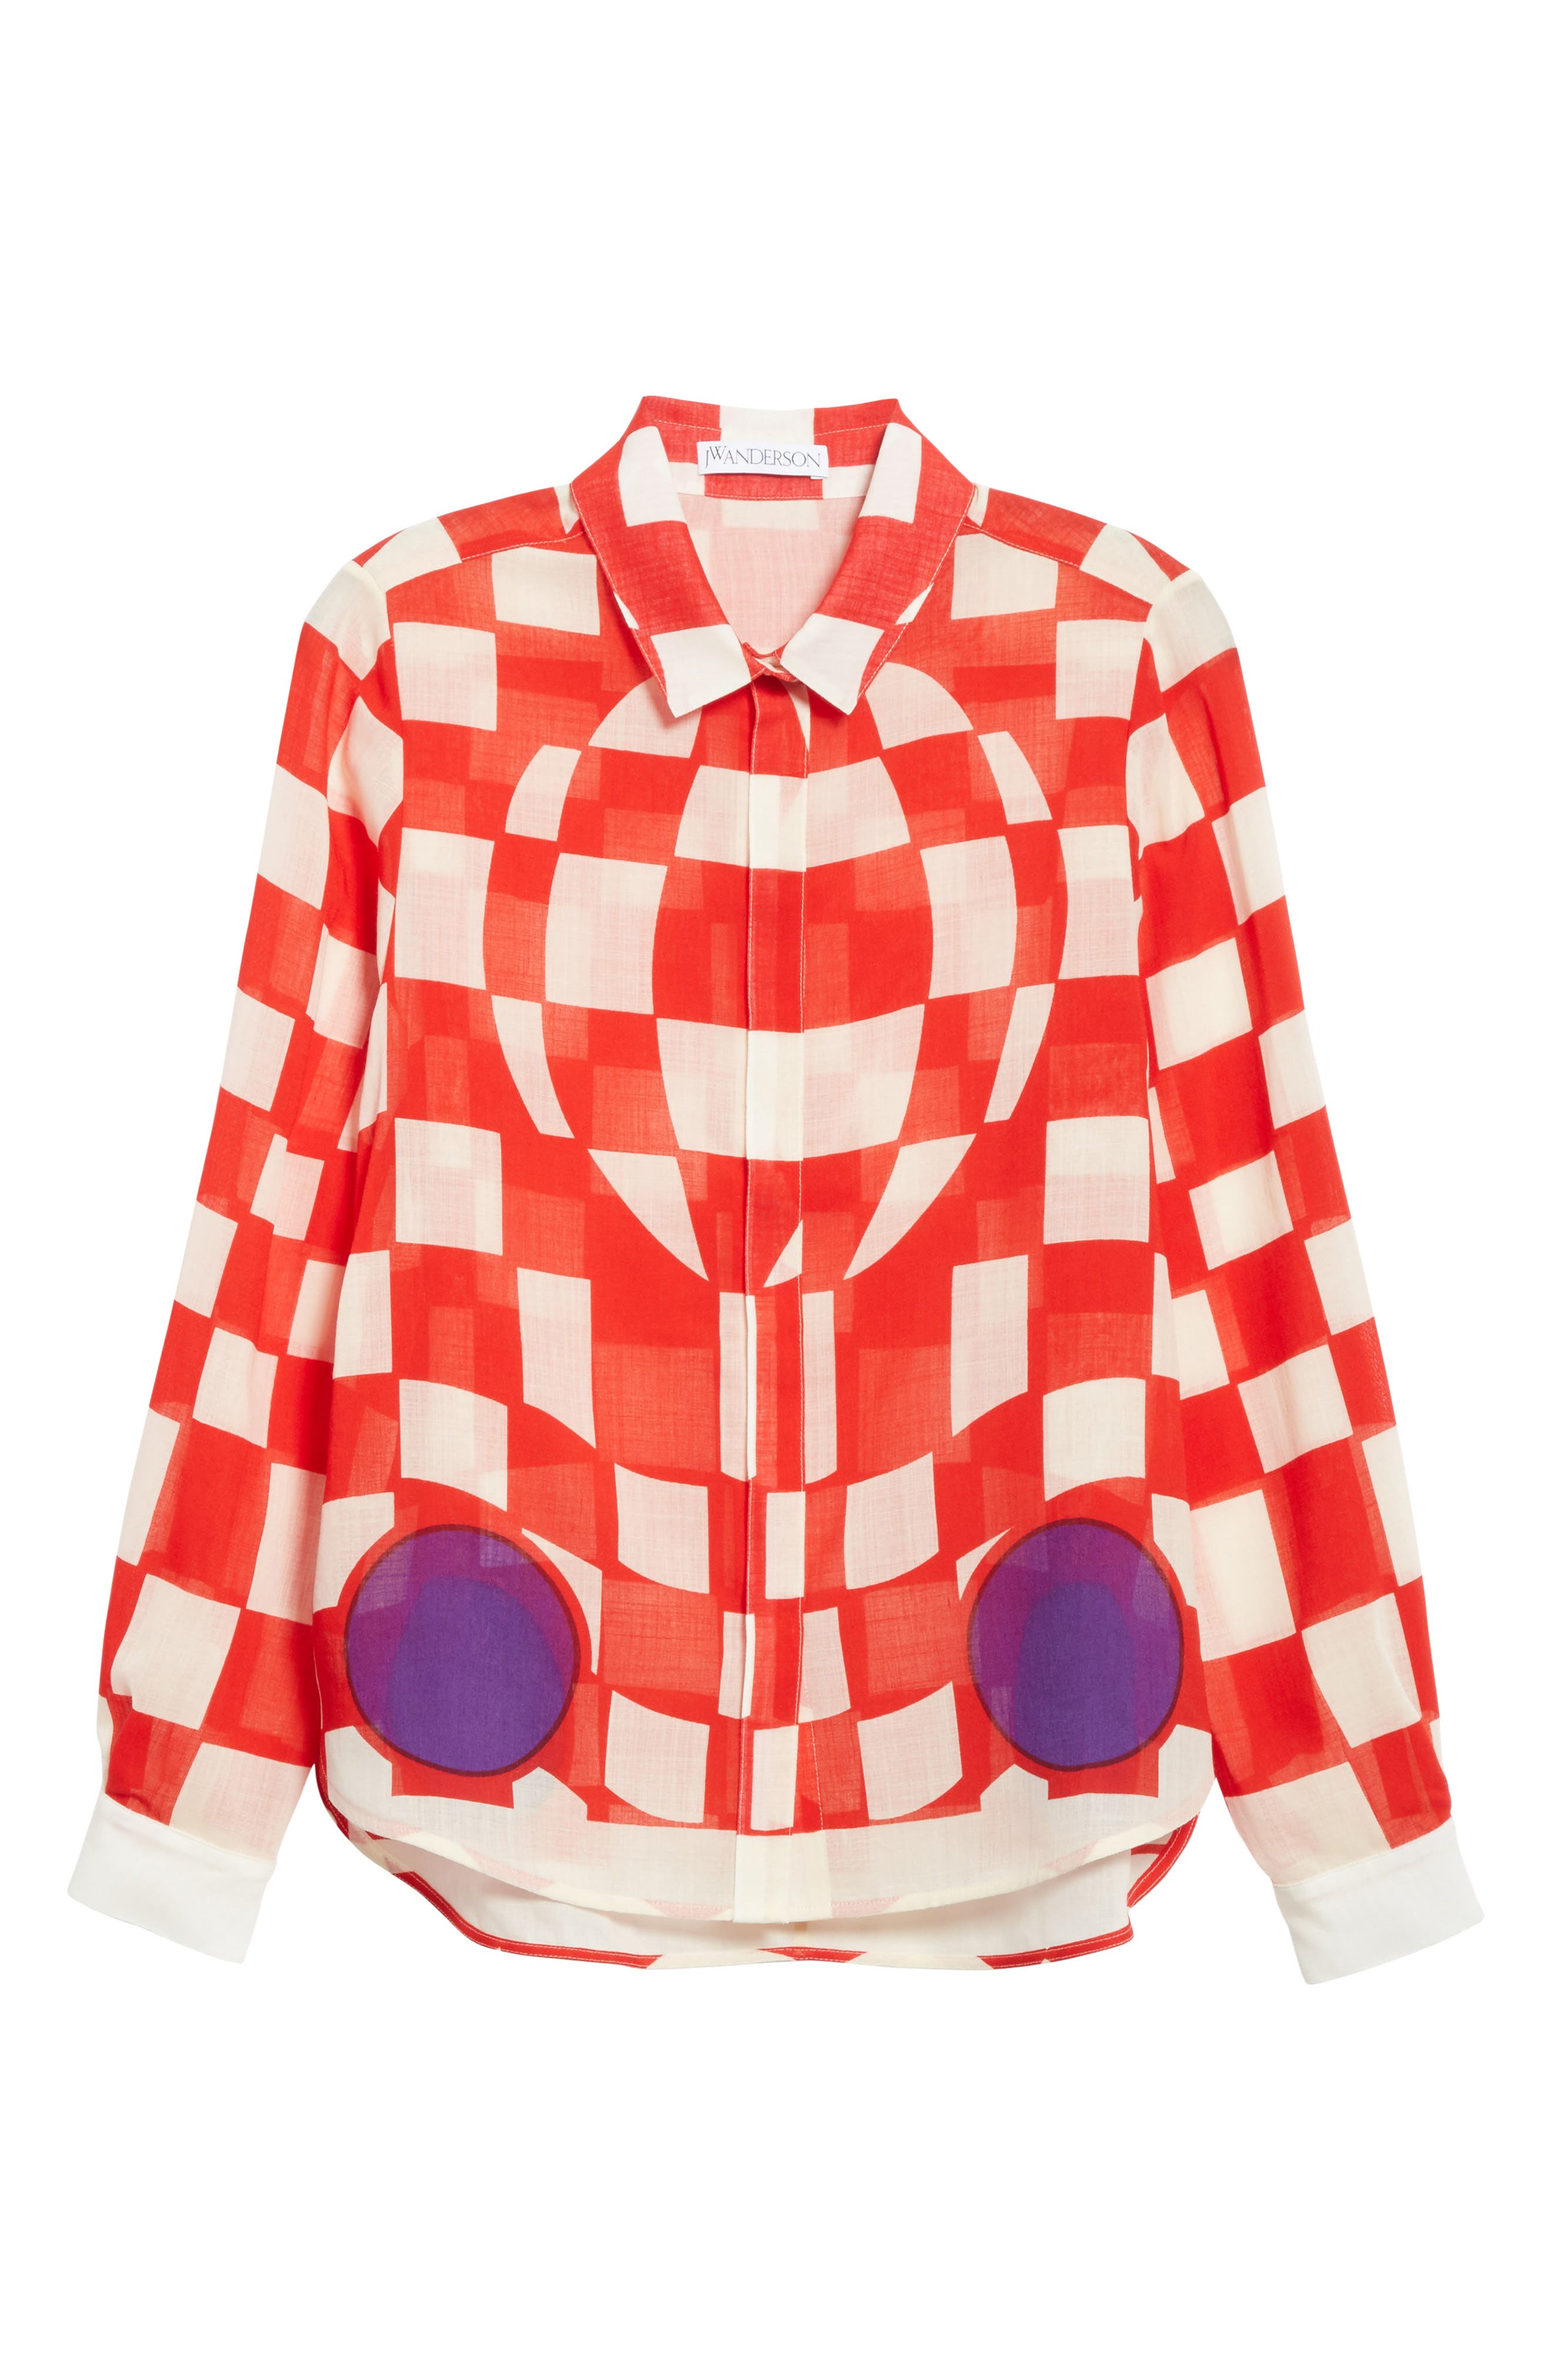 Checkerboard Print Blouse,                             Alternate thumbnail 6, color,                             Pillar Box Red